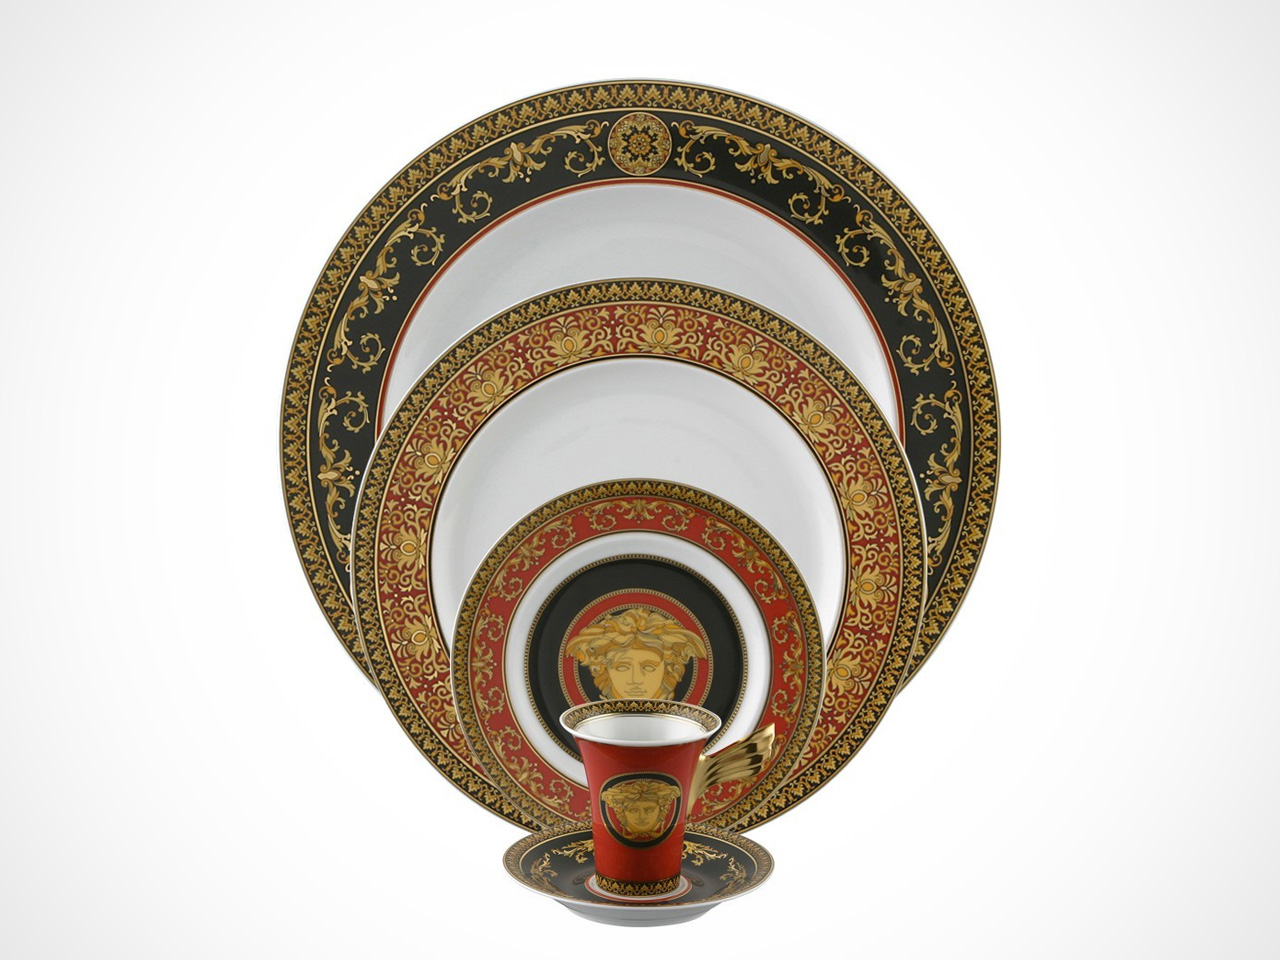 Versace Medusa Red 5 piece place setting on white background.